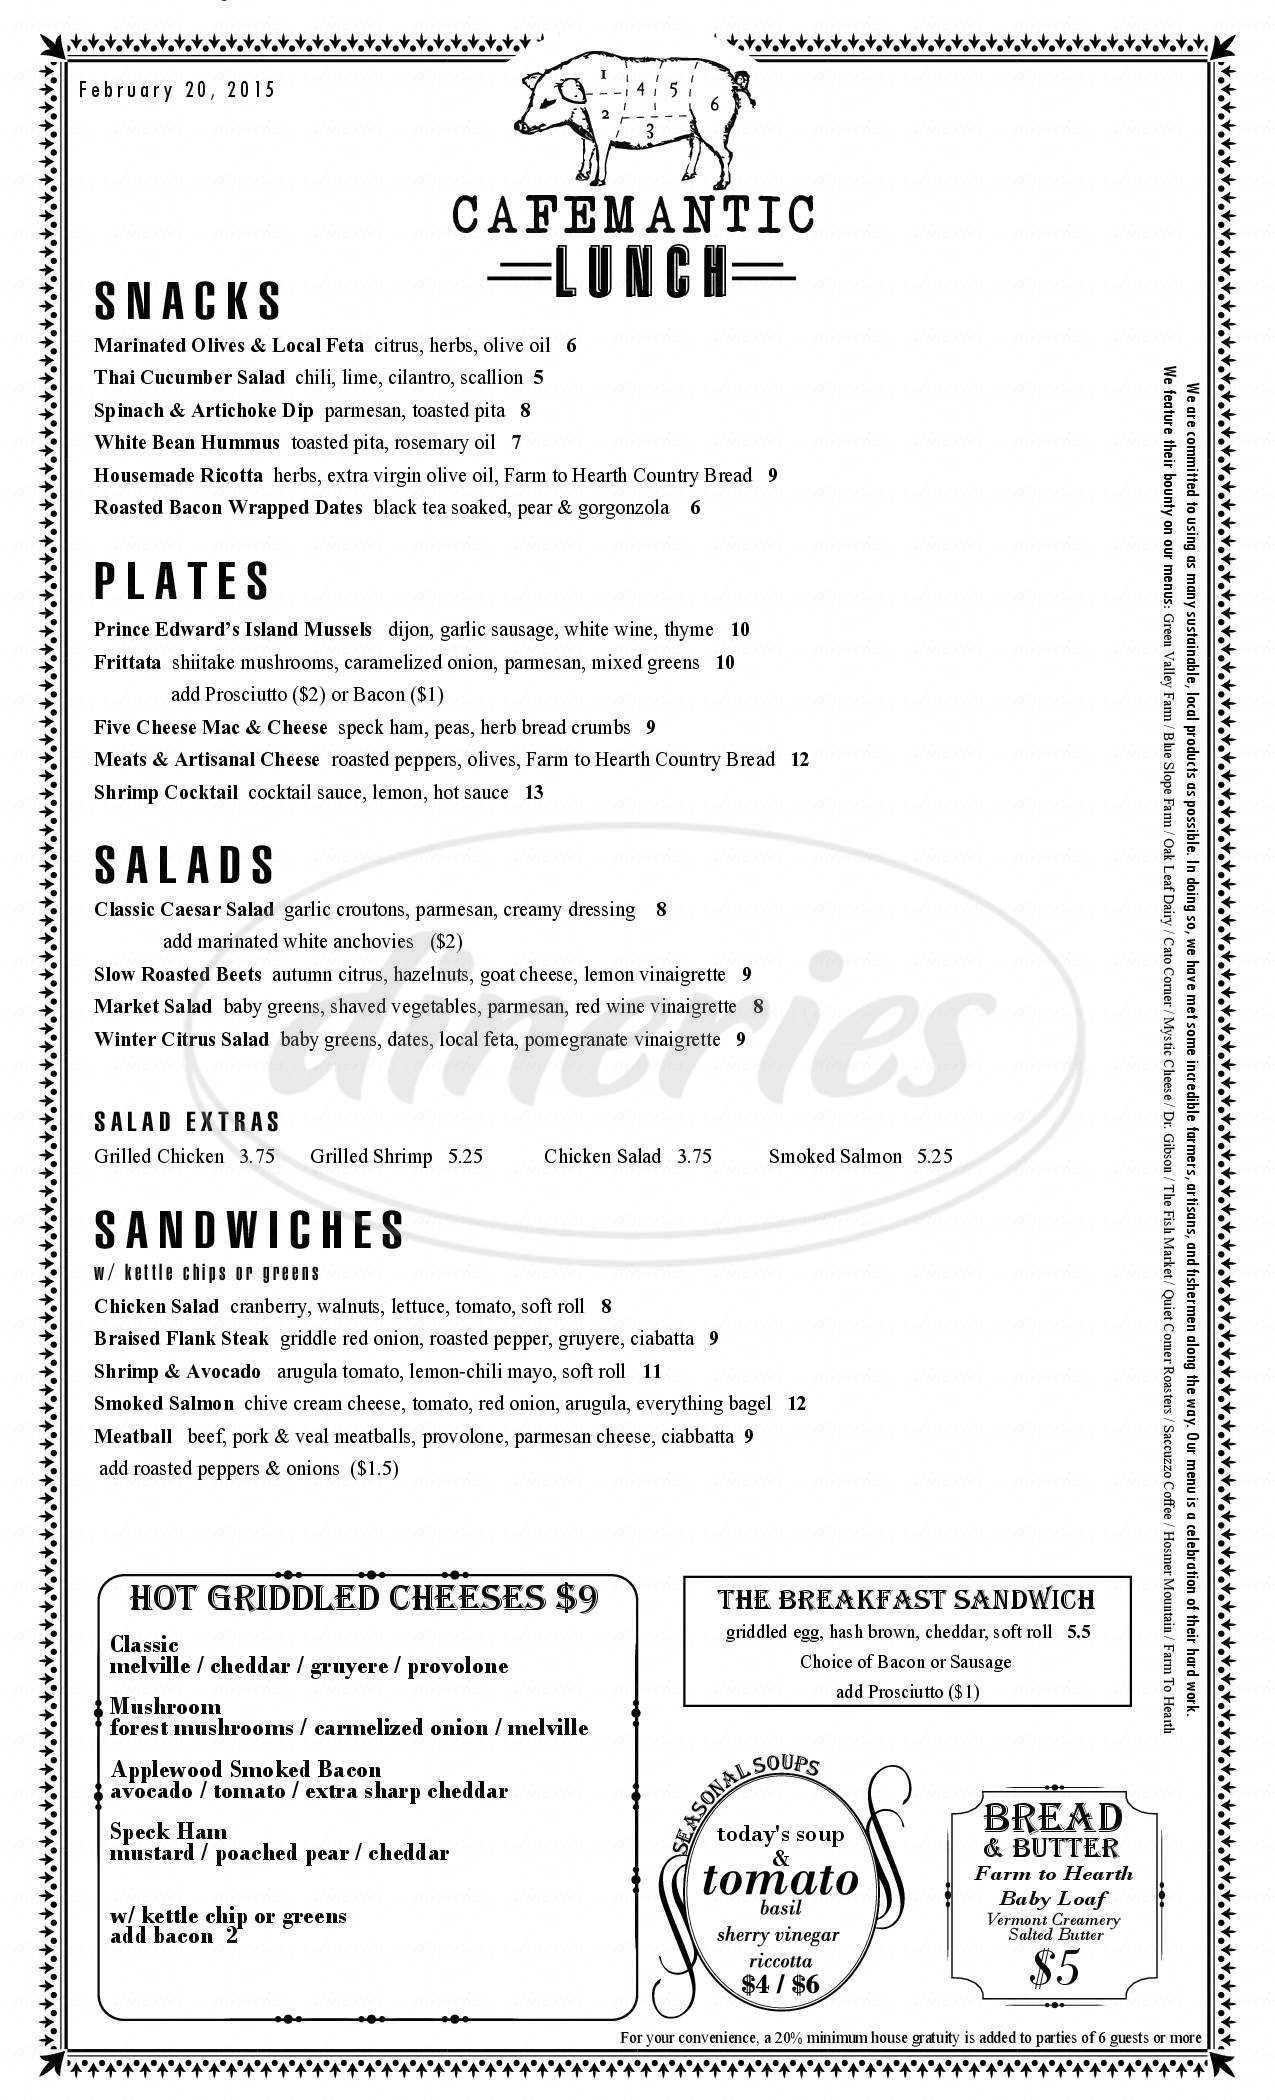 menu for Cafemantic